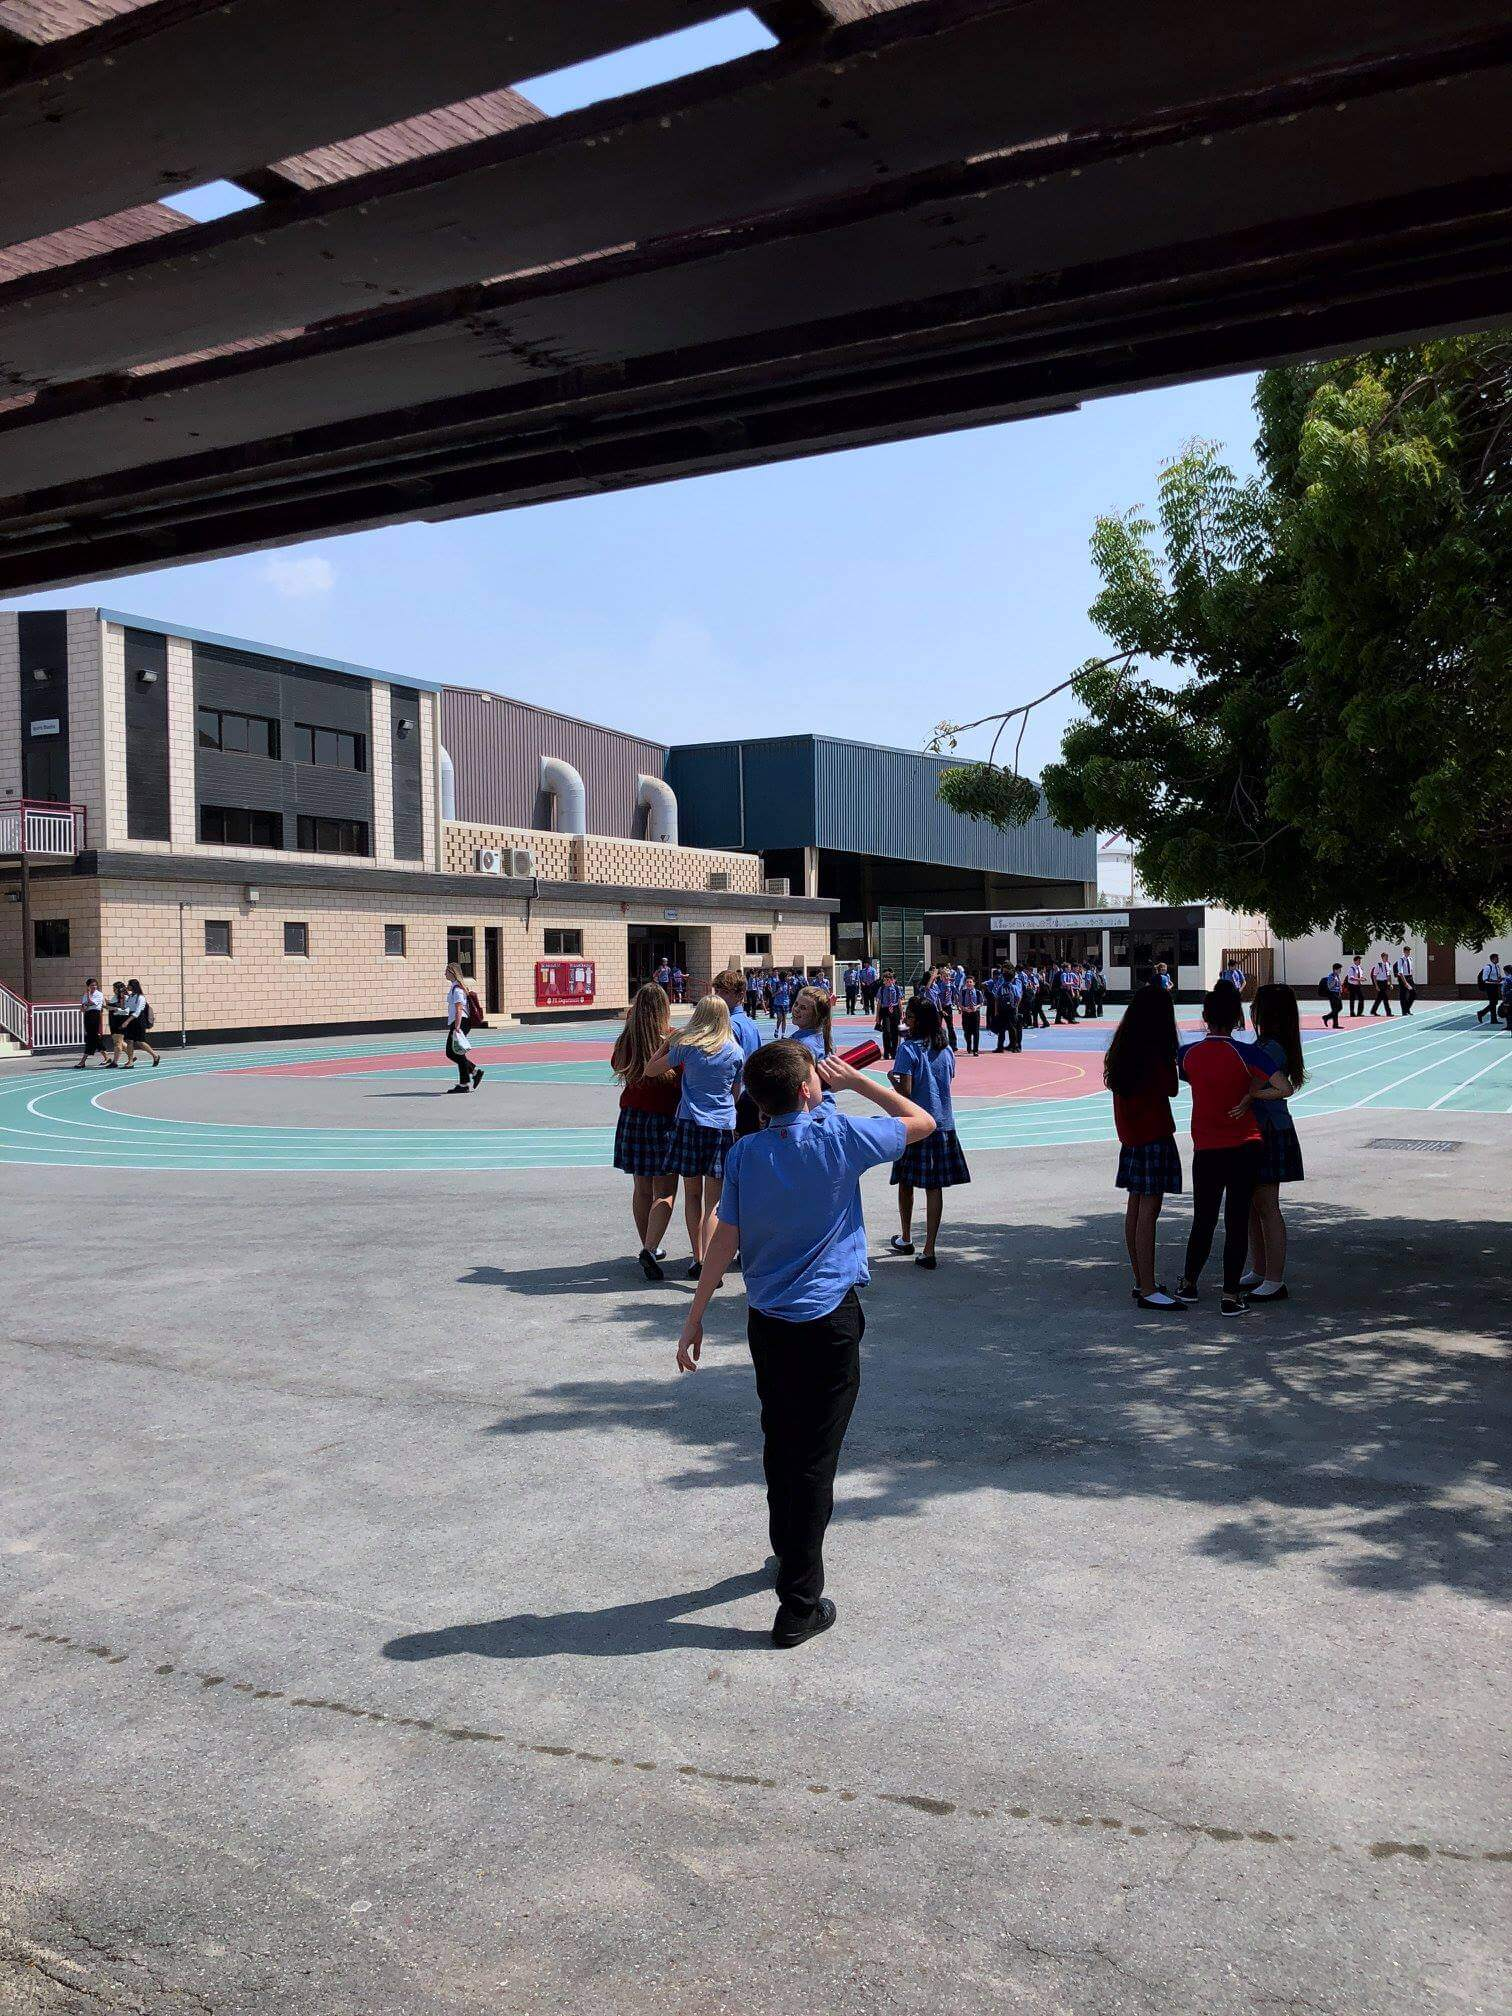 Track Break: 'Getting used to the weather in Bahrain is hard for most and very few venture outside the safety of air conditioning, but on occasion through September we get some cool afternoons or even a break from the humidity. St Christopher's Senior School has many open areas and a prime one is this central track which many find themselves walking across daily to their various lessons'